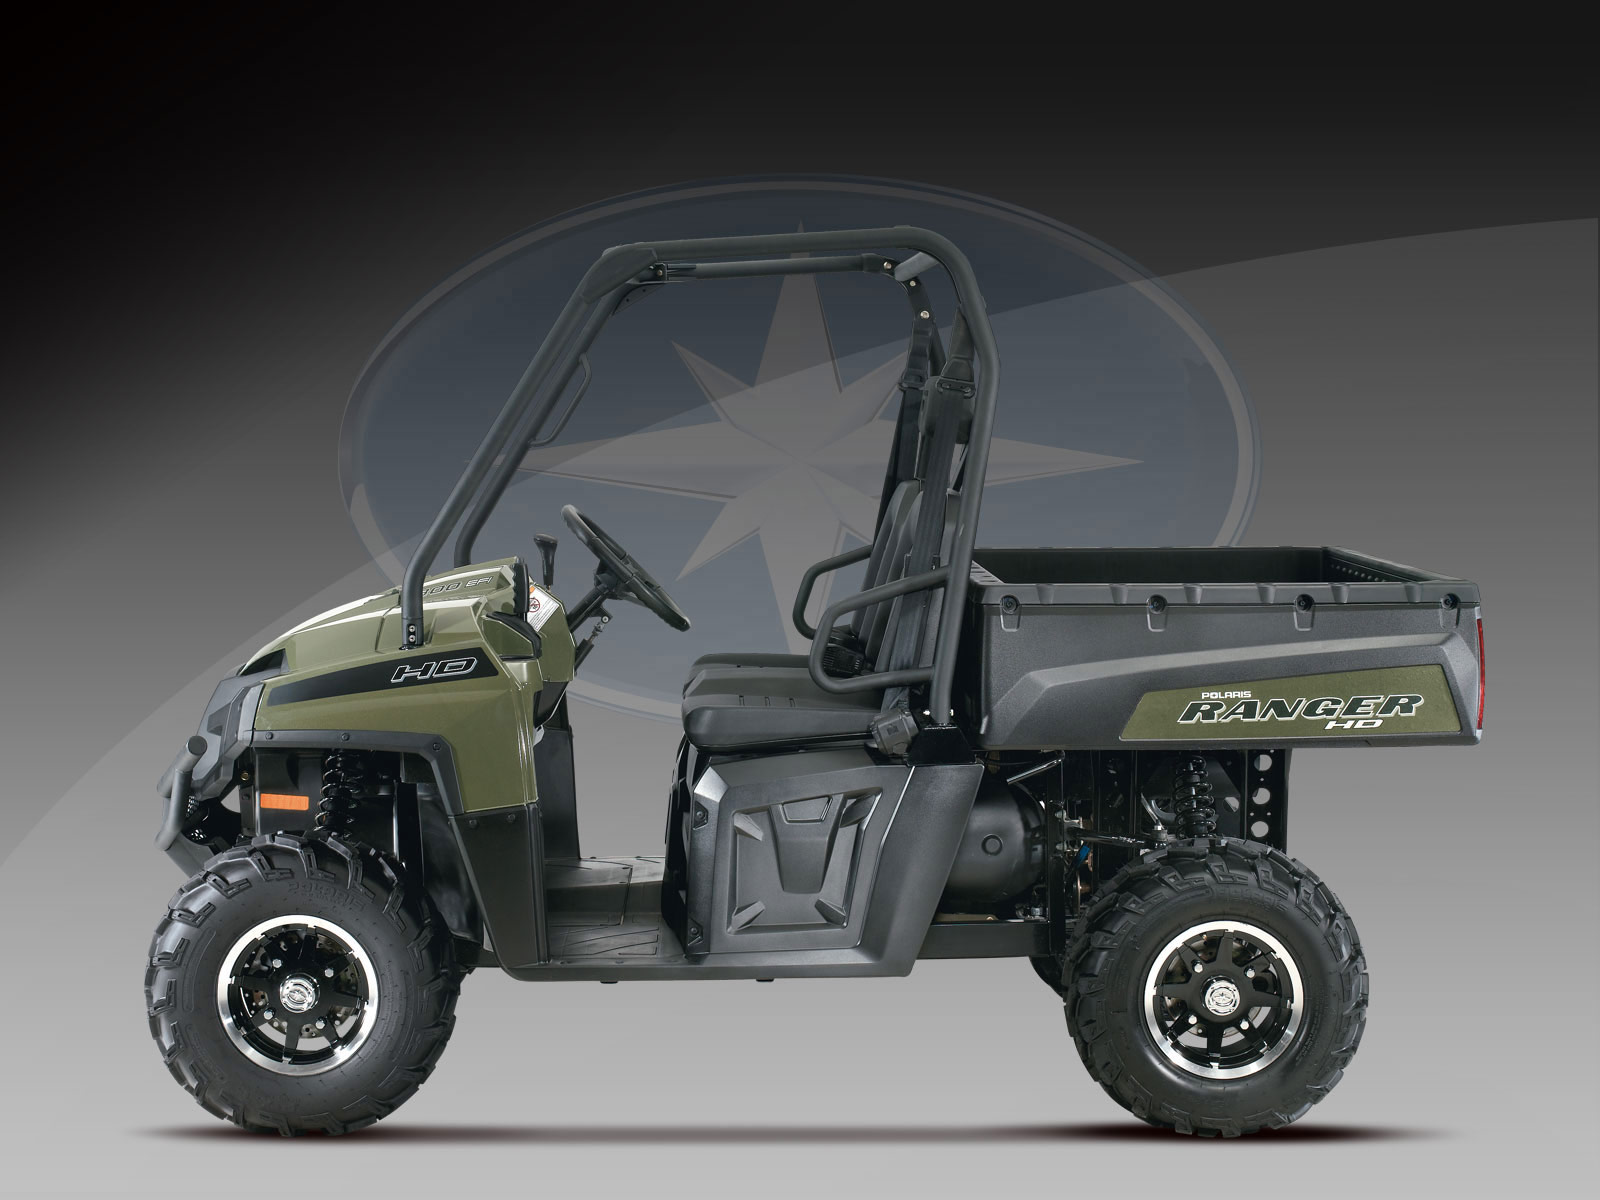 2010 polaris ranger 800hd atv accident lawyers information. Black Bedroom Furniture Sets. Home Design Ideas